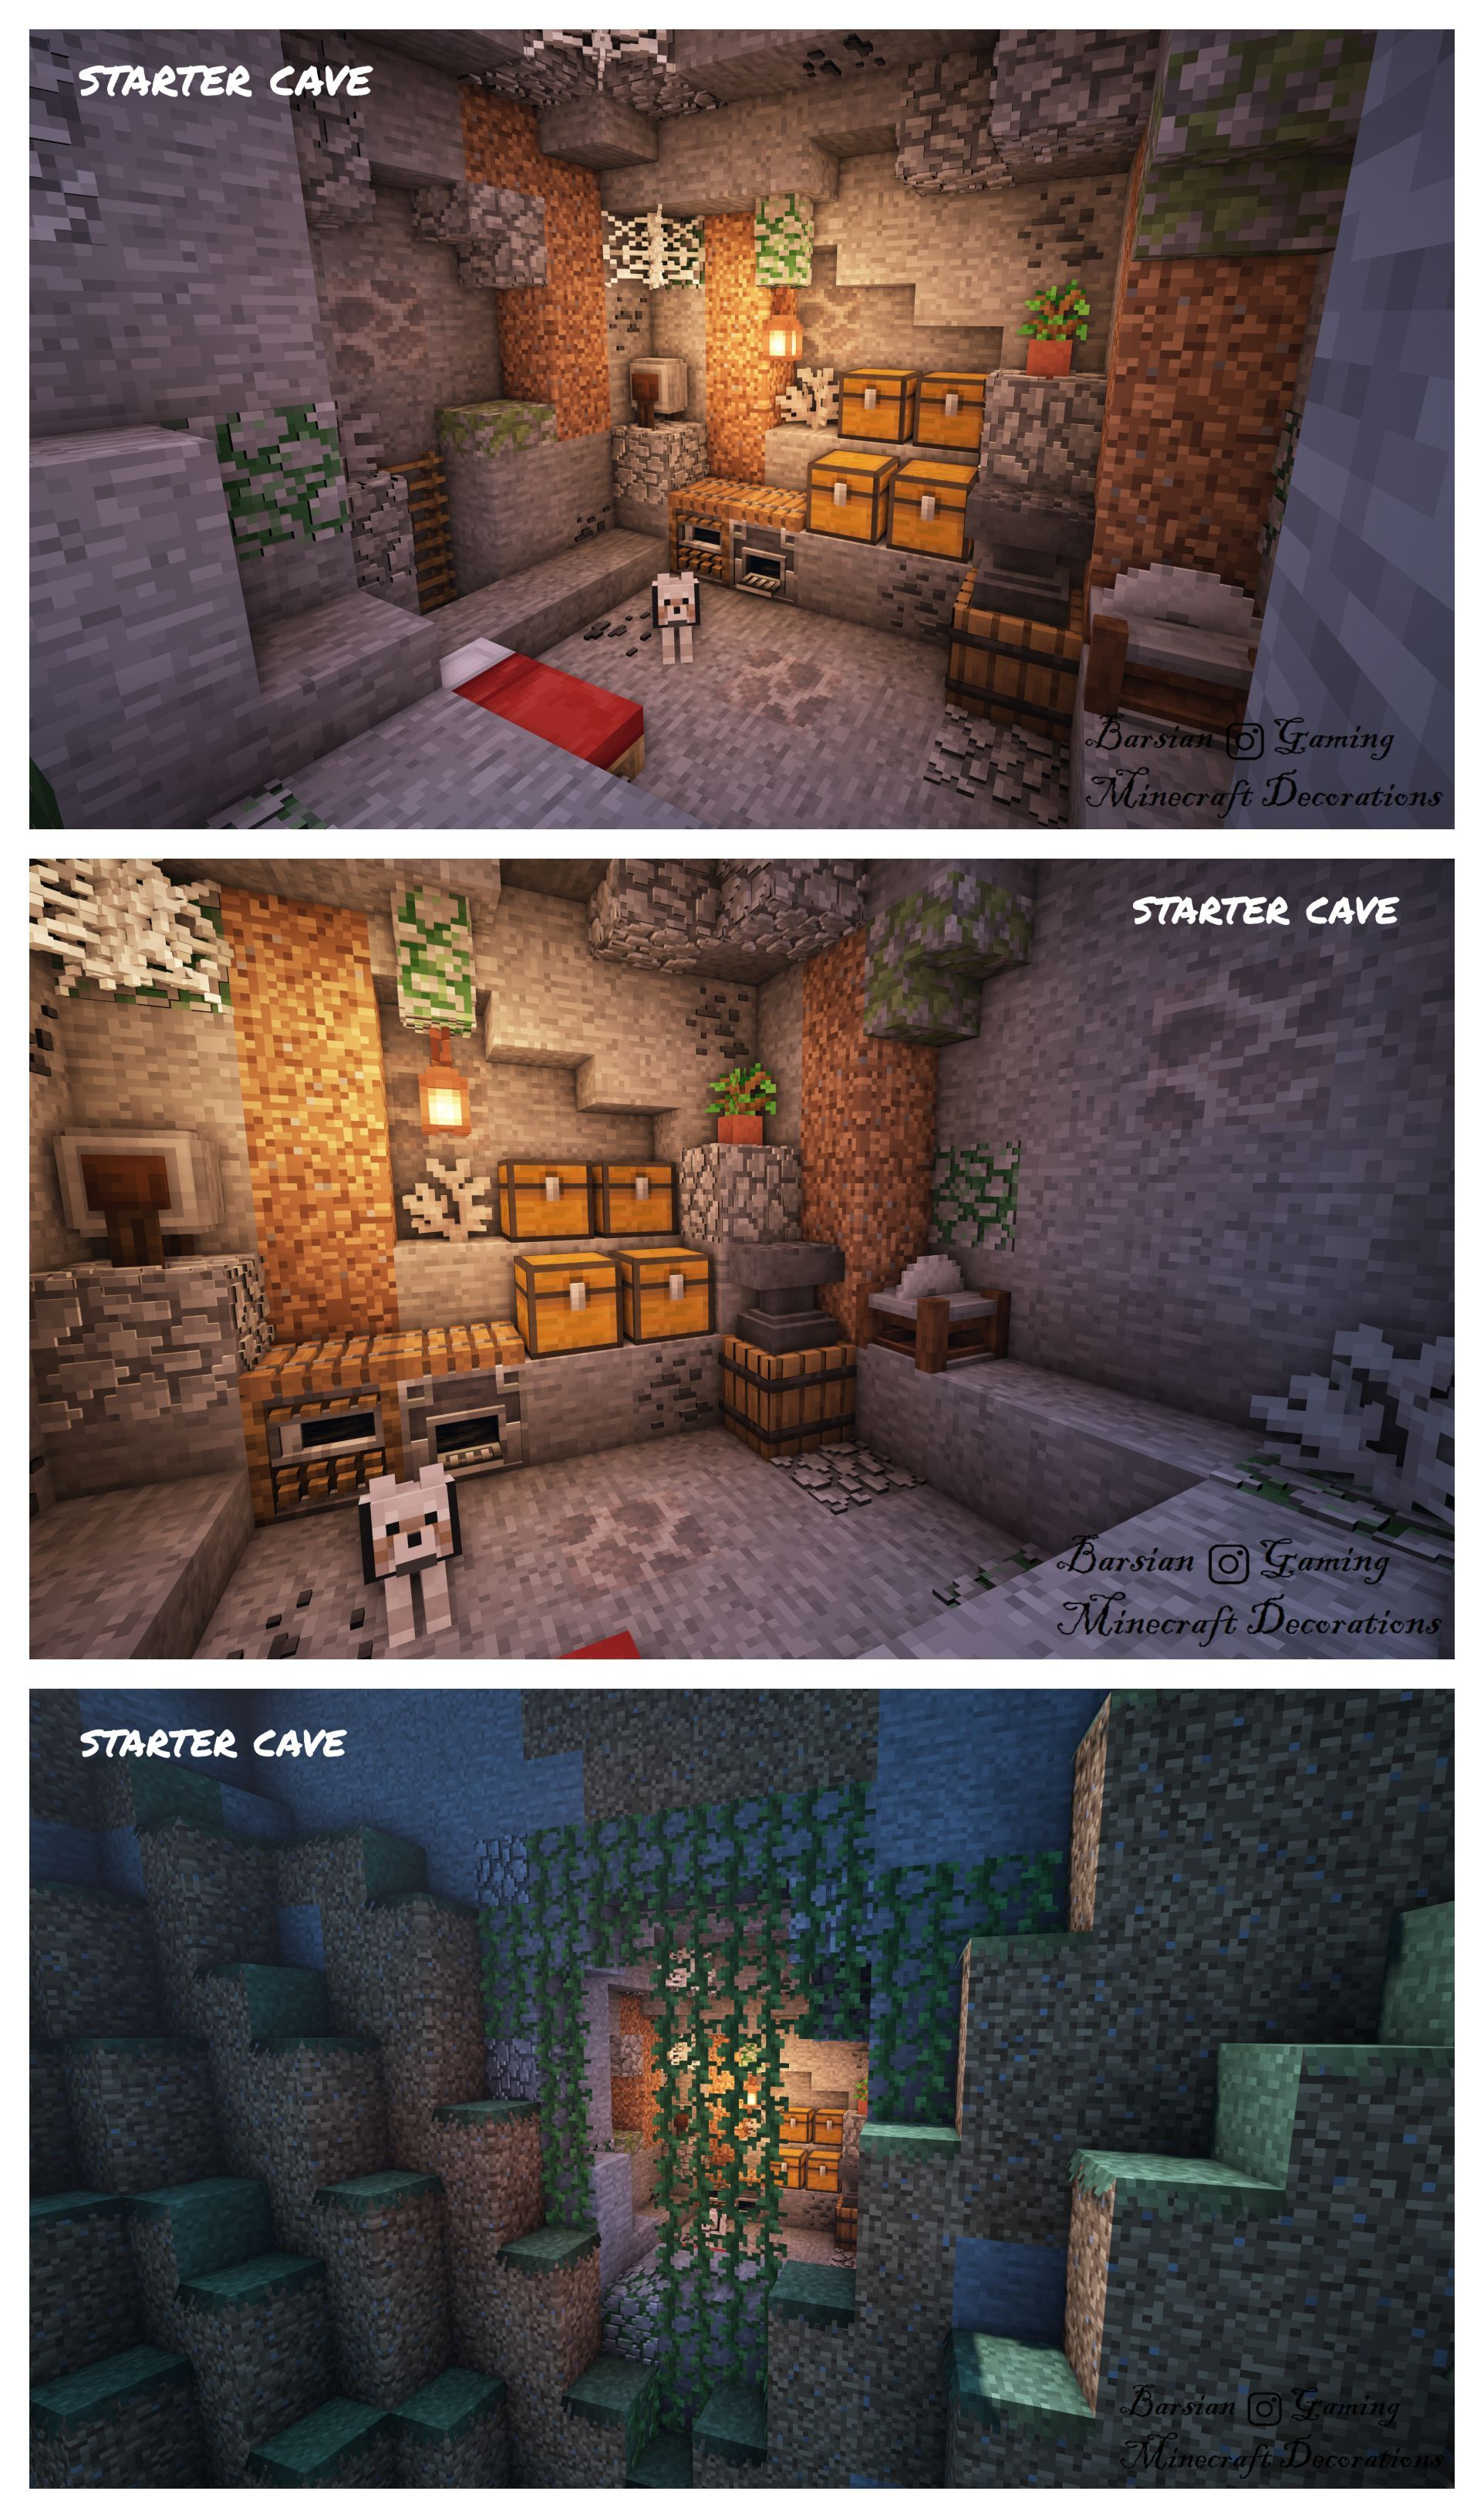 Starter Cave Minecraft Houses Minecraft Architecture Cool Minecraft Houses